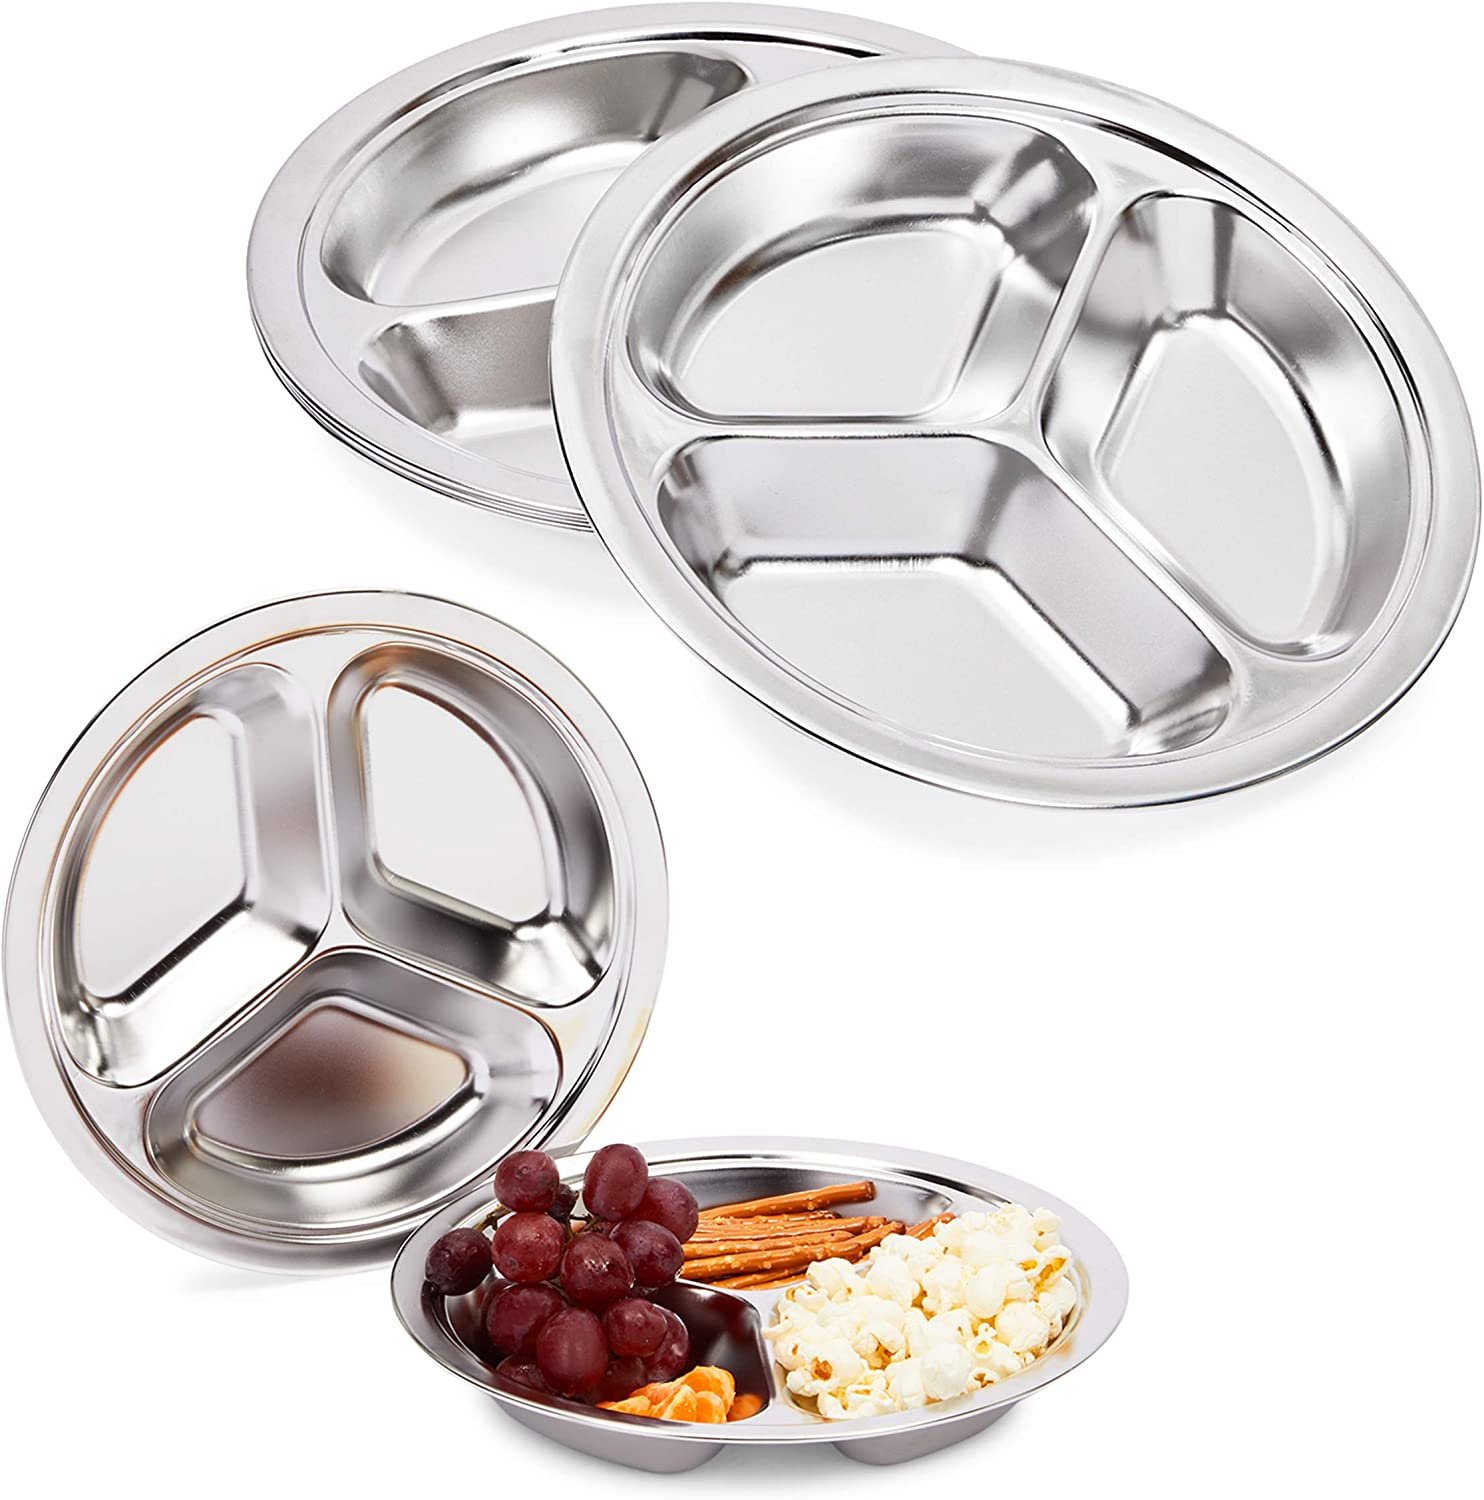 Divided Serving Tray, Stainless Steel Round Platter Dish (Silver, 9 In, 5 Pack)